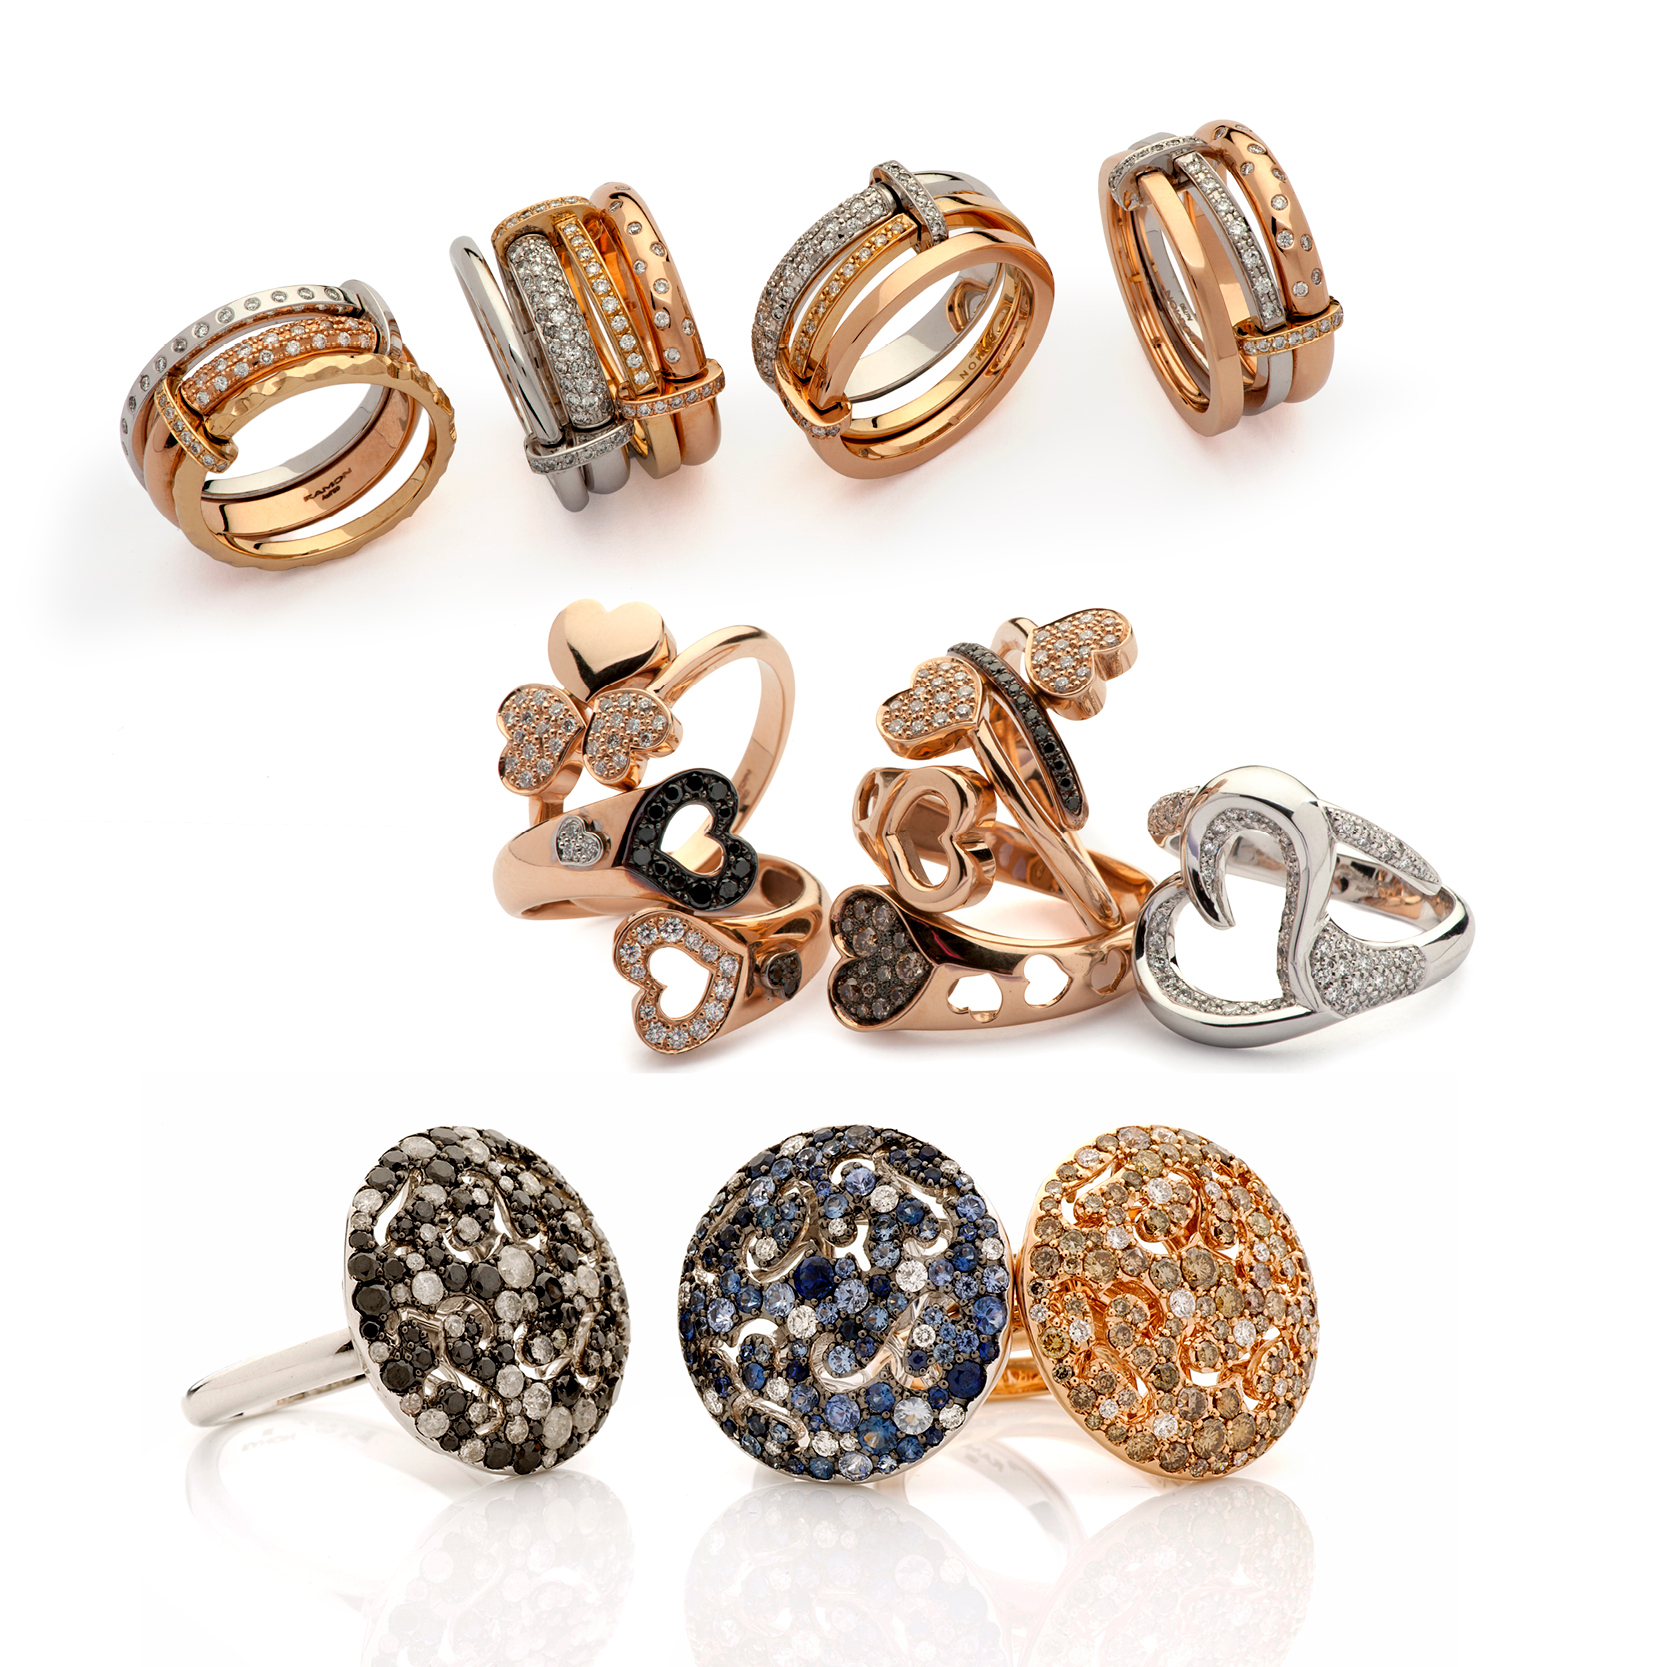 Rings with an innovative design